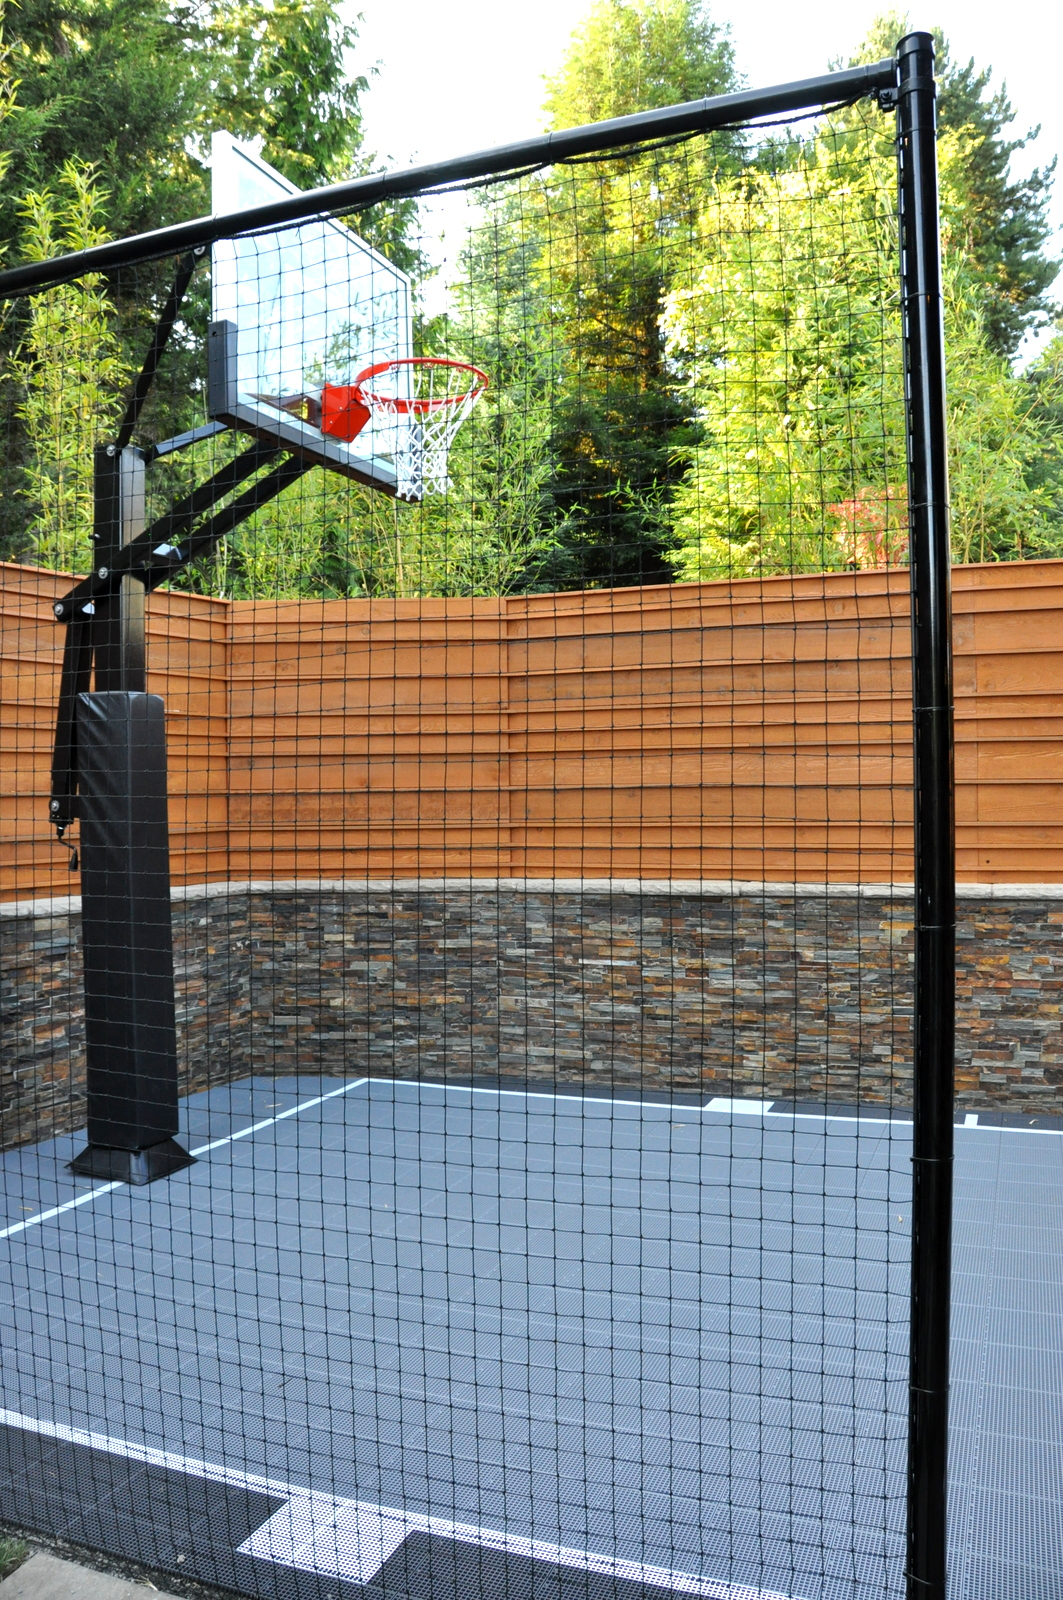 1000 images about landscape design on pinterest for Average basketball court size